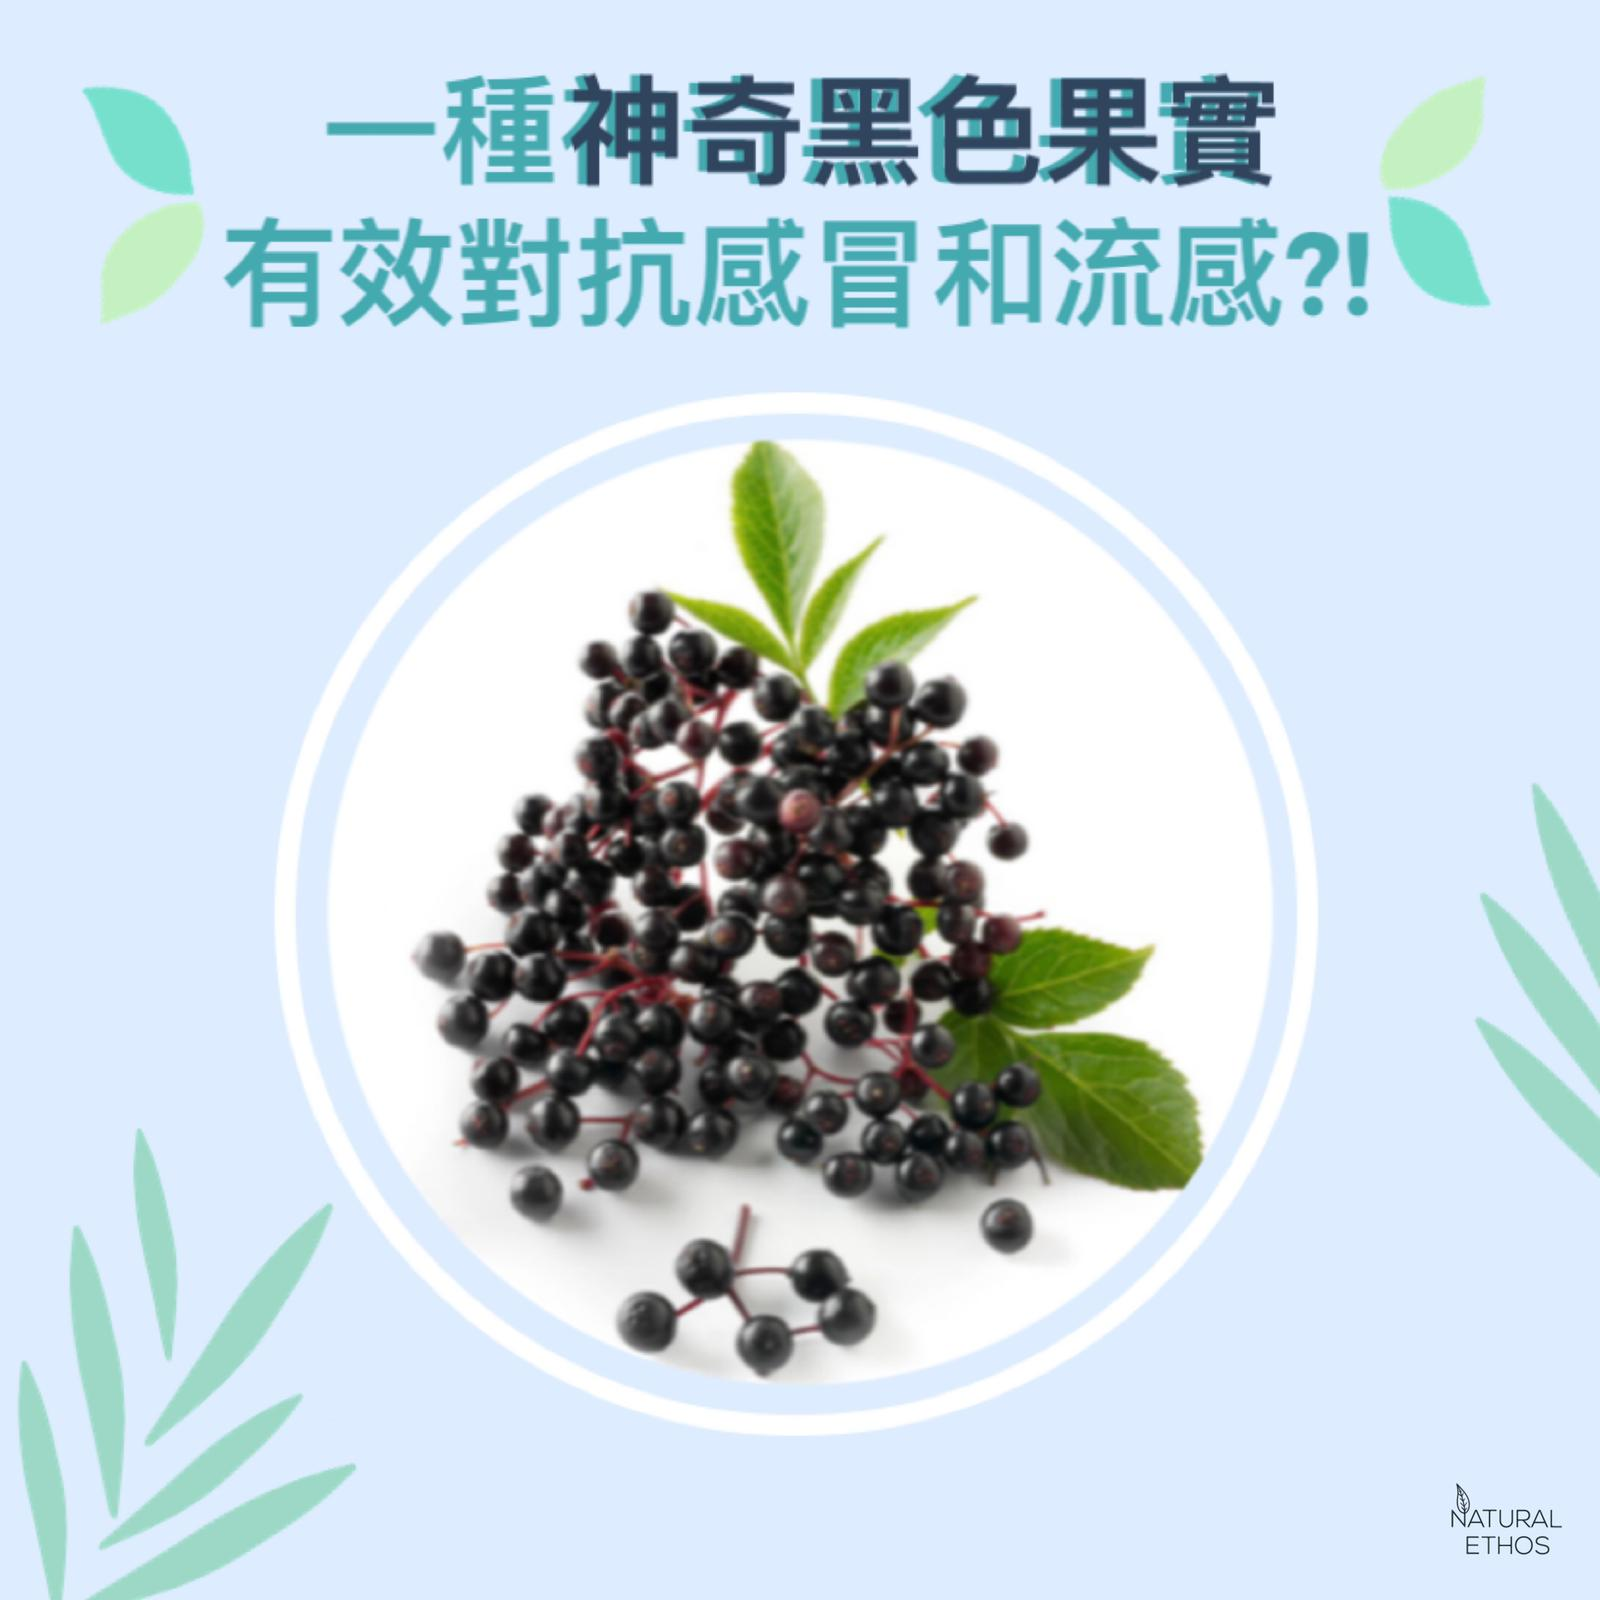 black elderberry sambucol health benefit hk